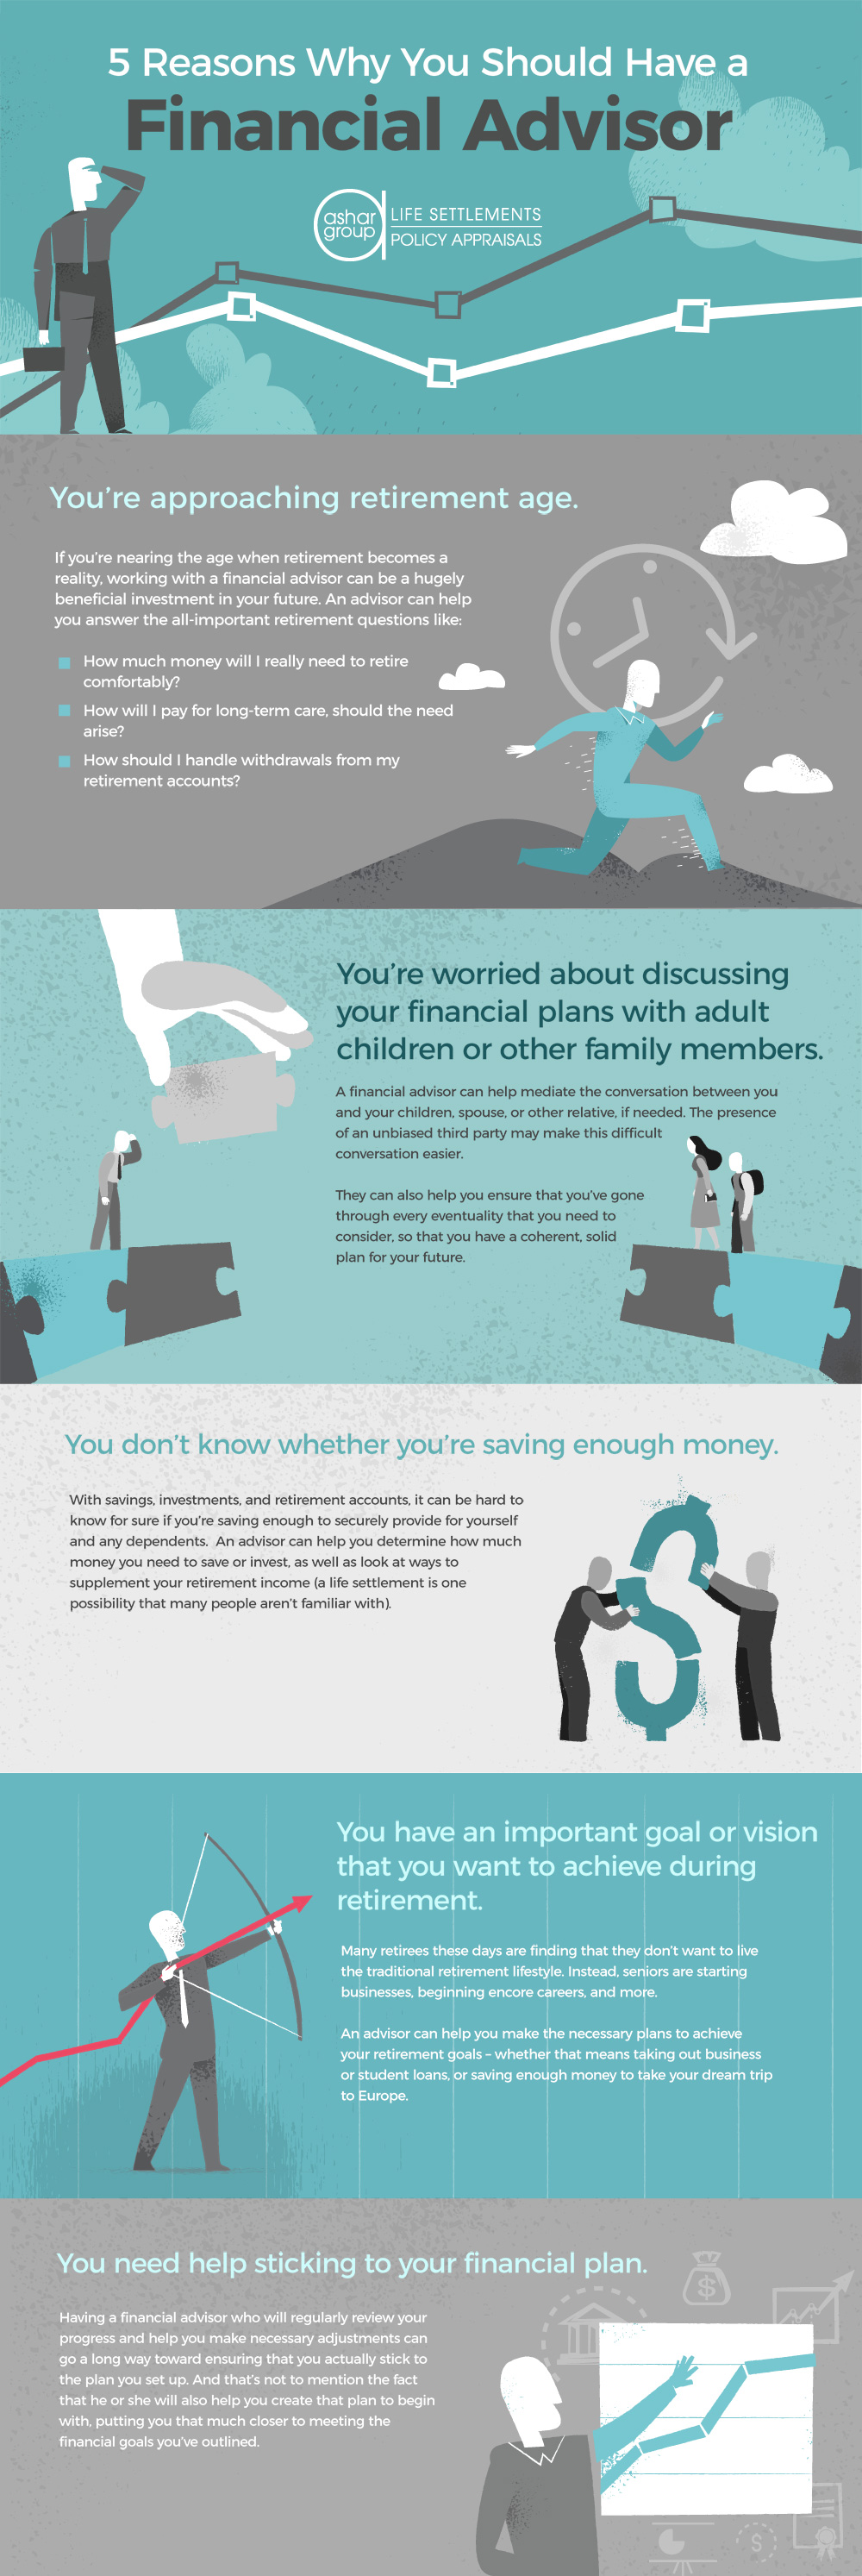 5 Reasons Why You Should Have A Financial Advisor